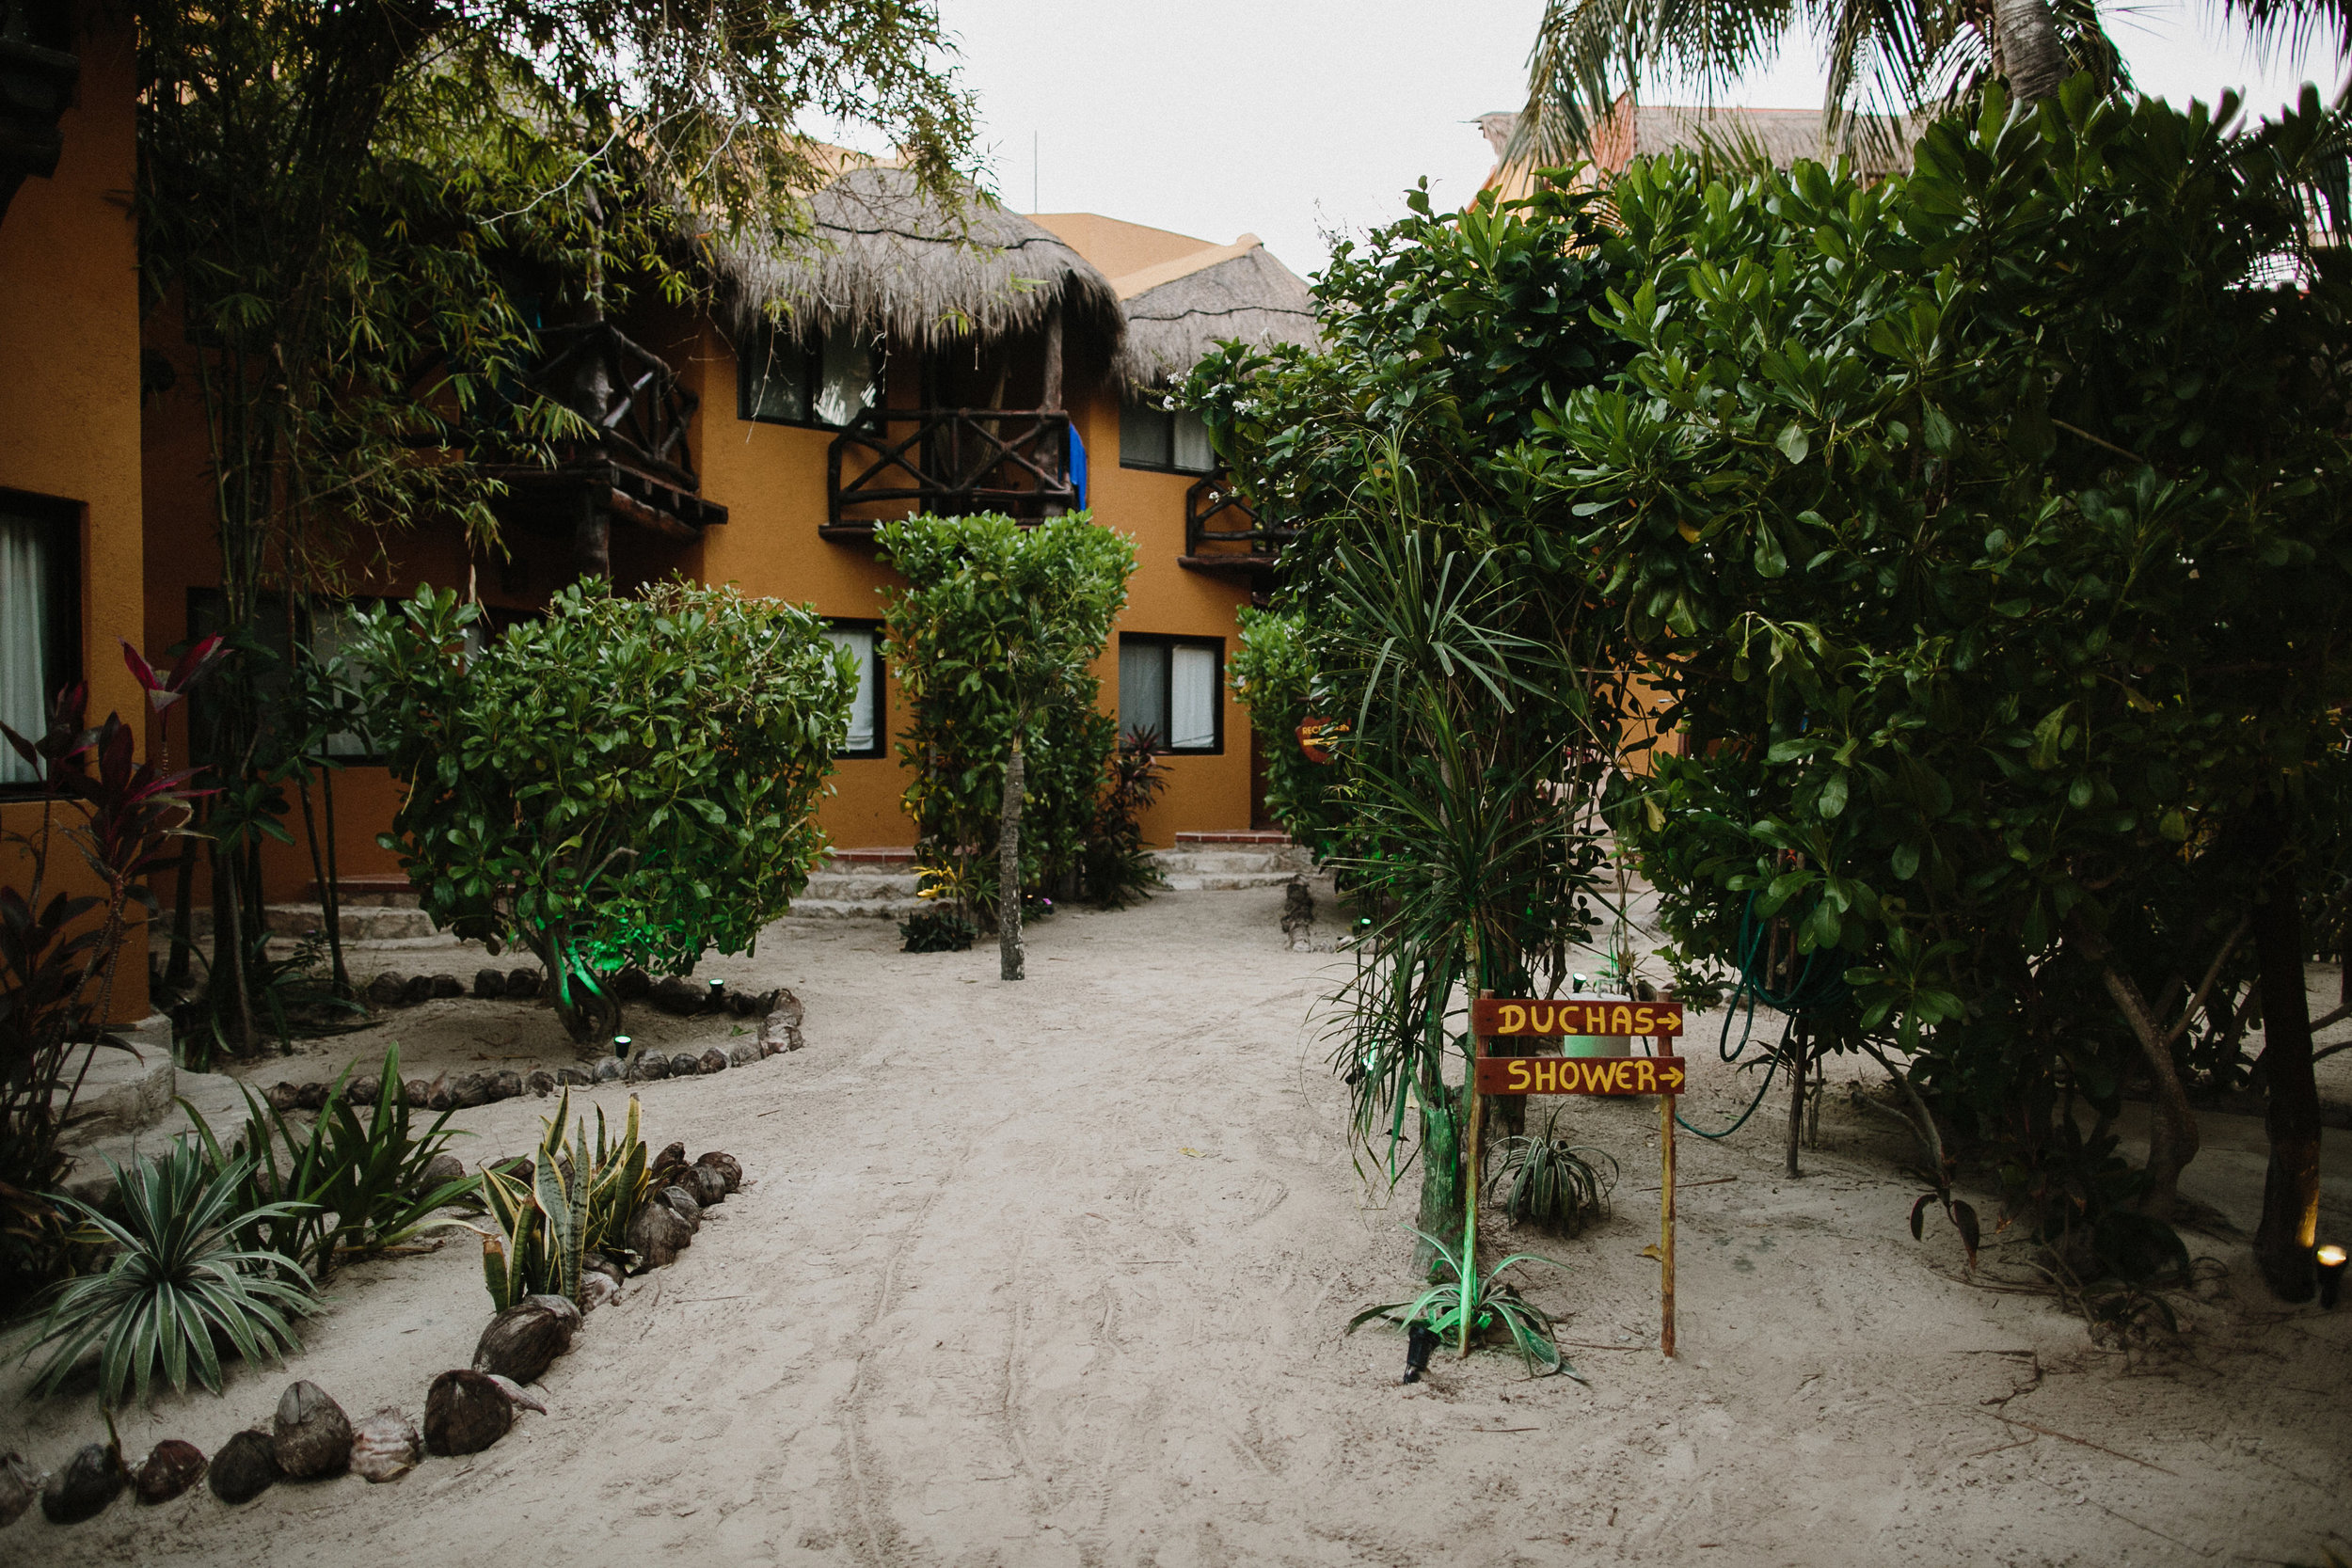 alfonso_flores_destination_wedding_photographer_holbox_nomada_workshop-142.jpg